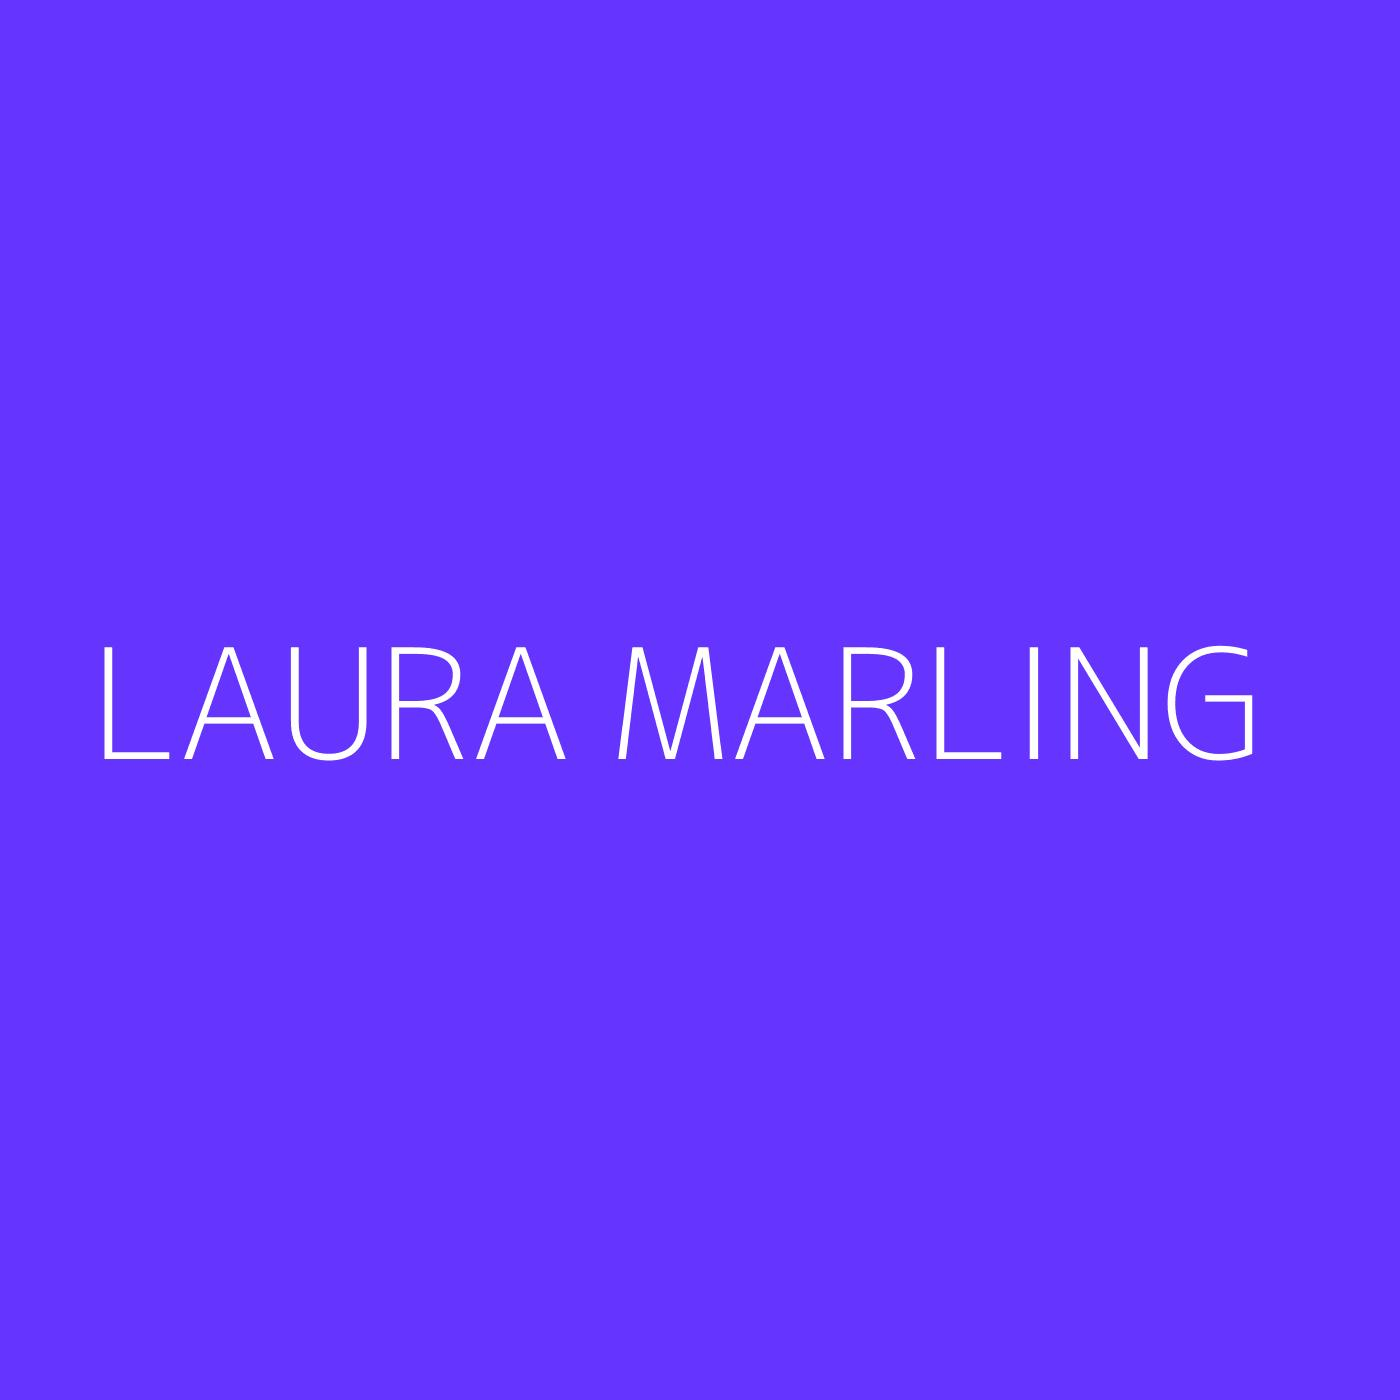 Laura Marling Playlist Artwork